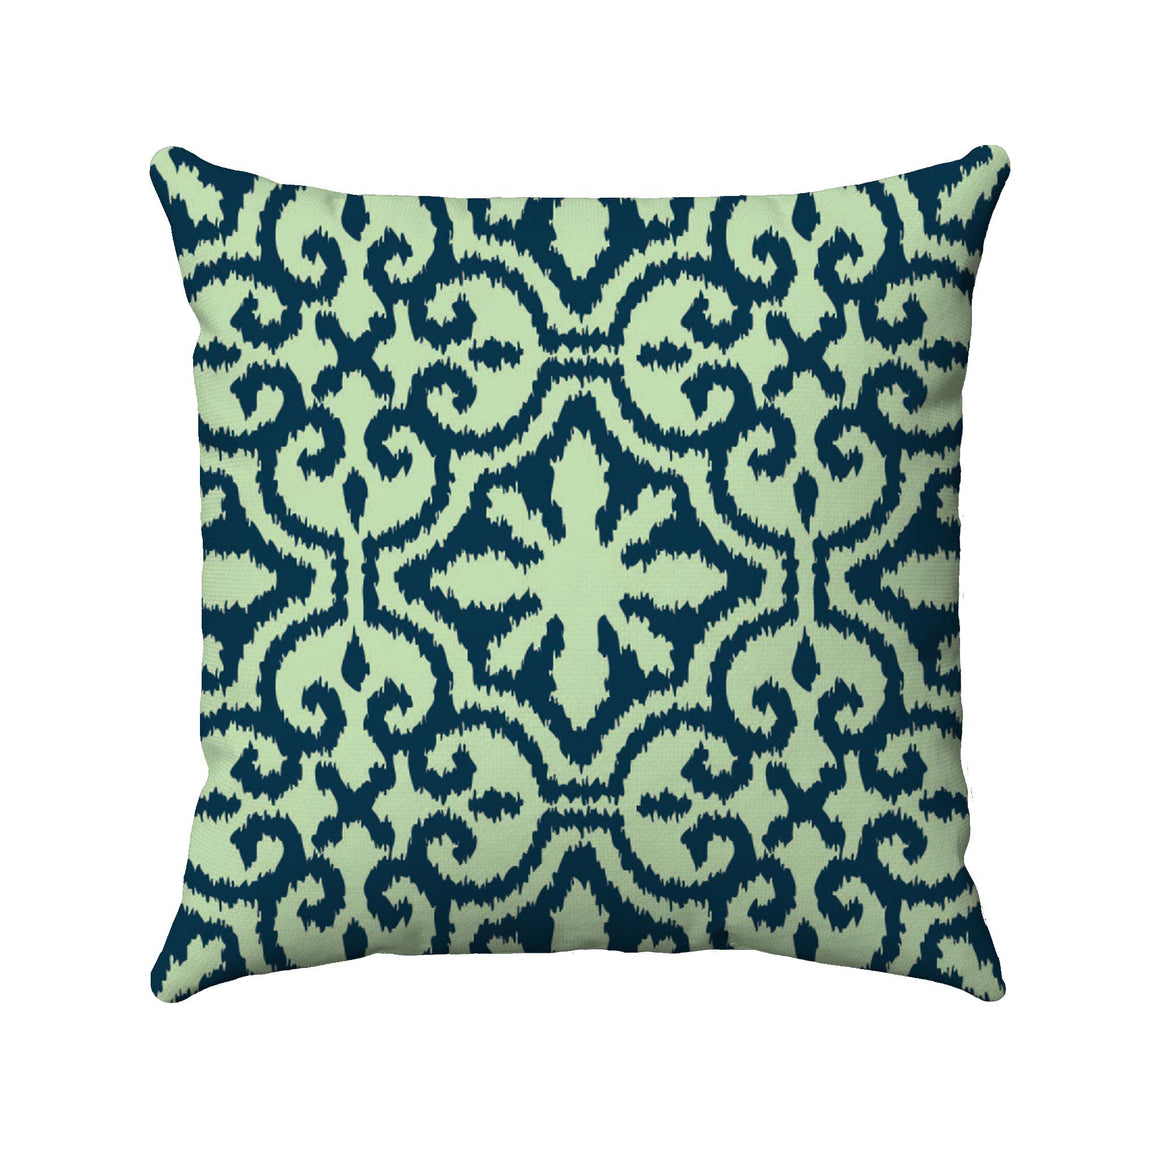 Blue damask ikat design on a light green background